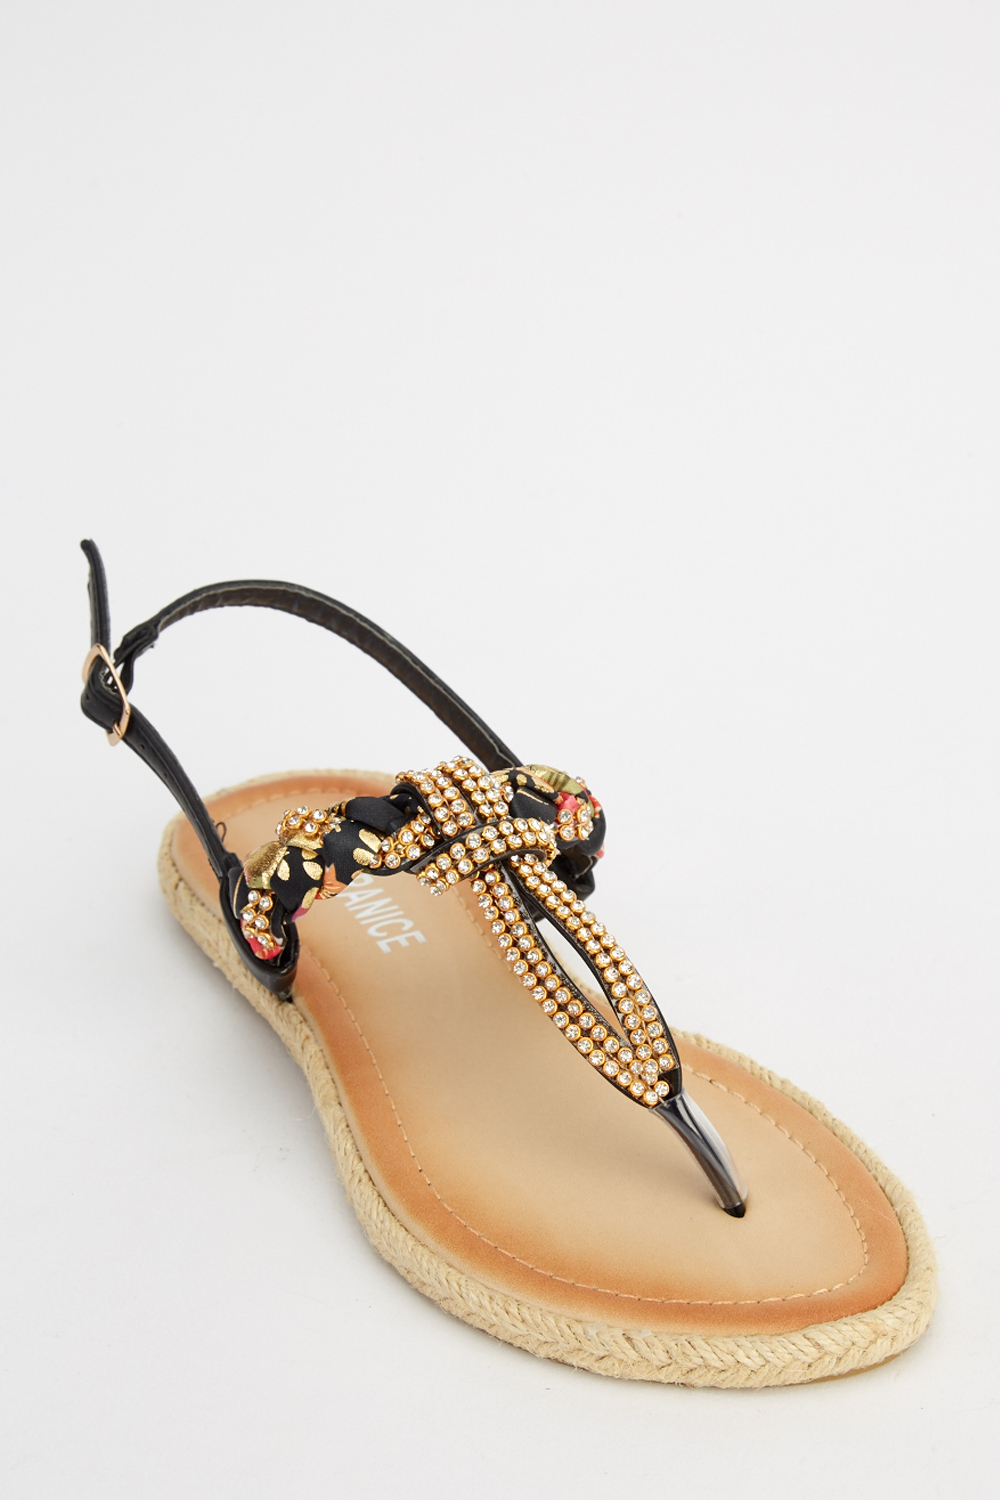 2de250713 Embellished Flip Flop Sandals - Just £5